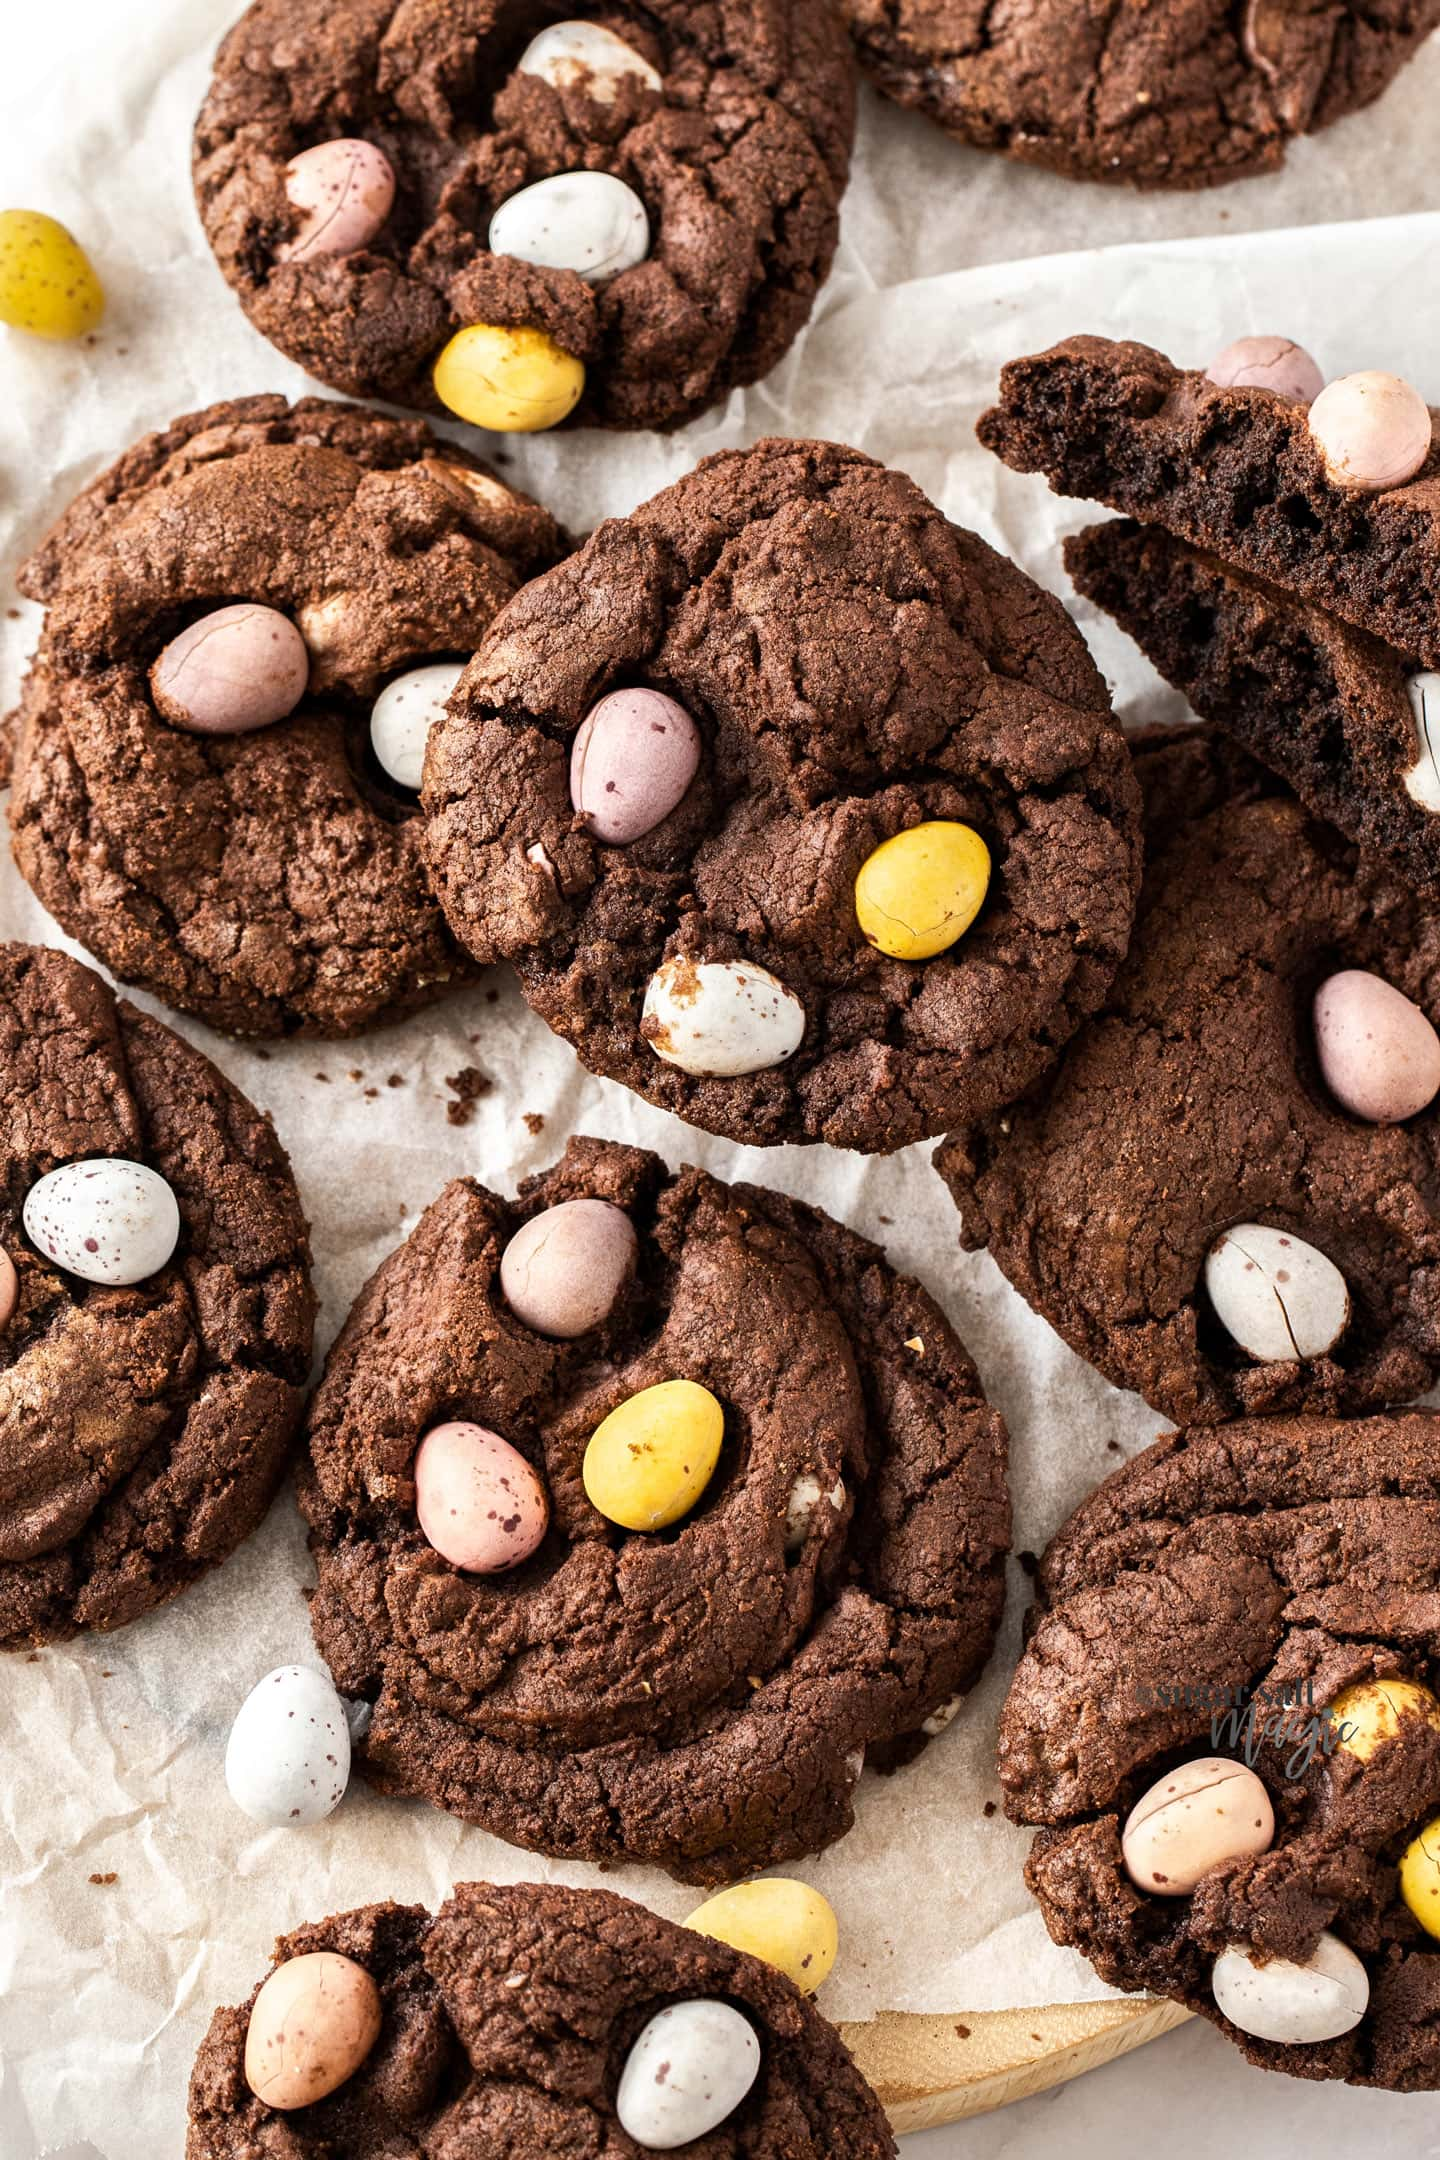 Closeup of a batch of chocolate cookies with Easter eggs in them.